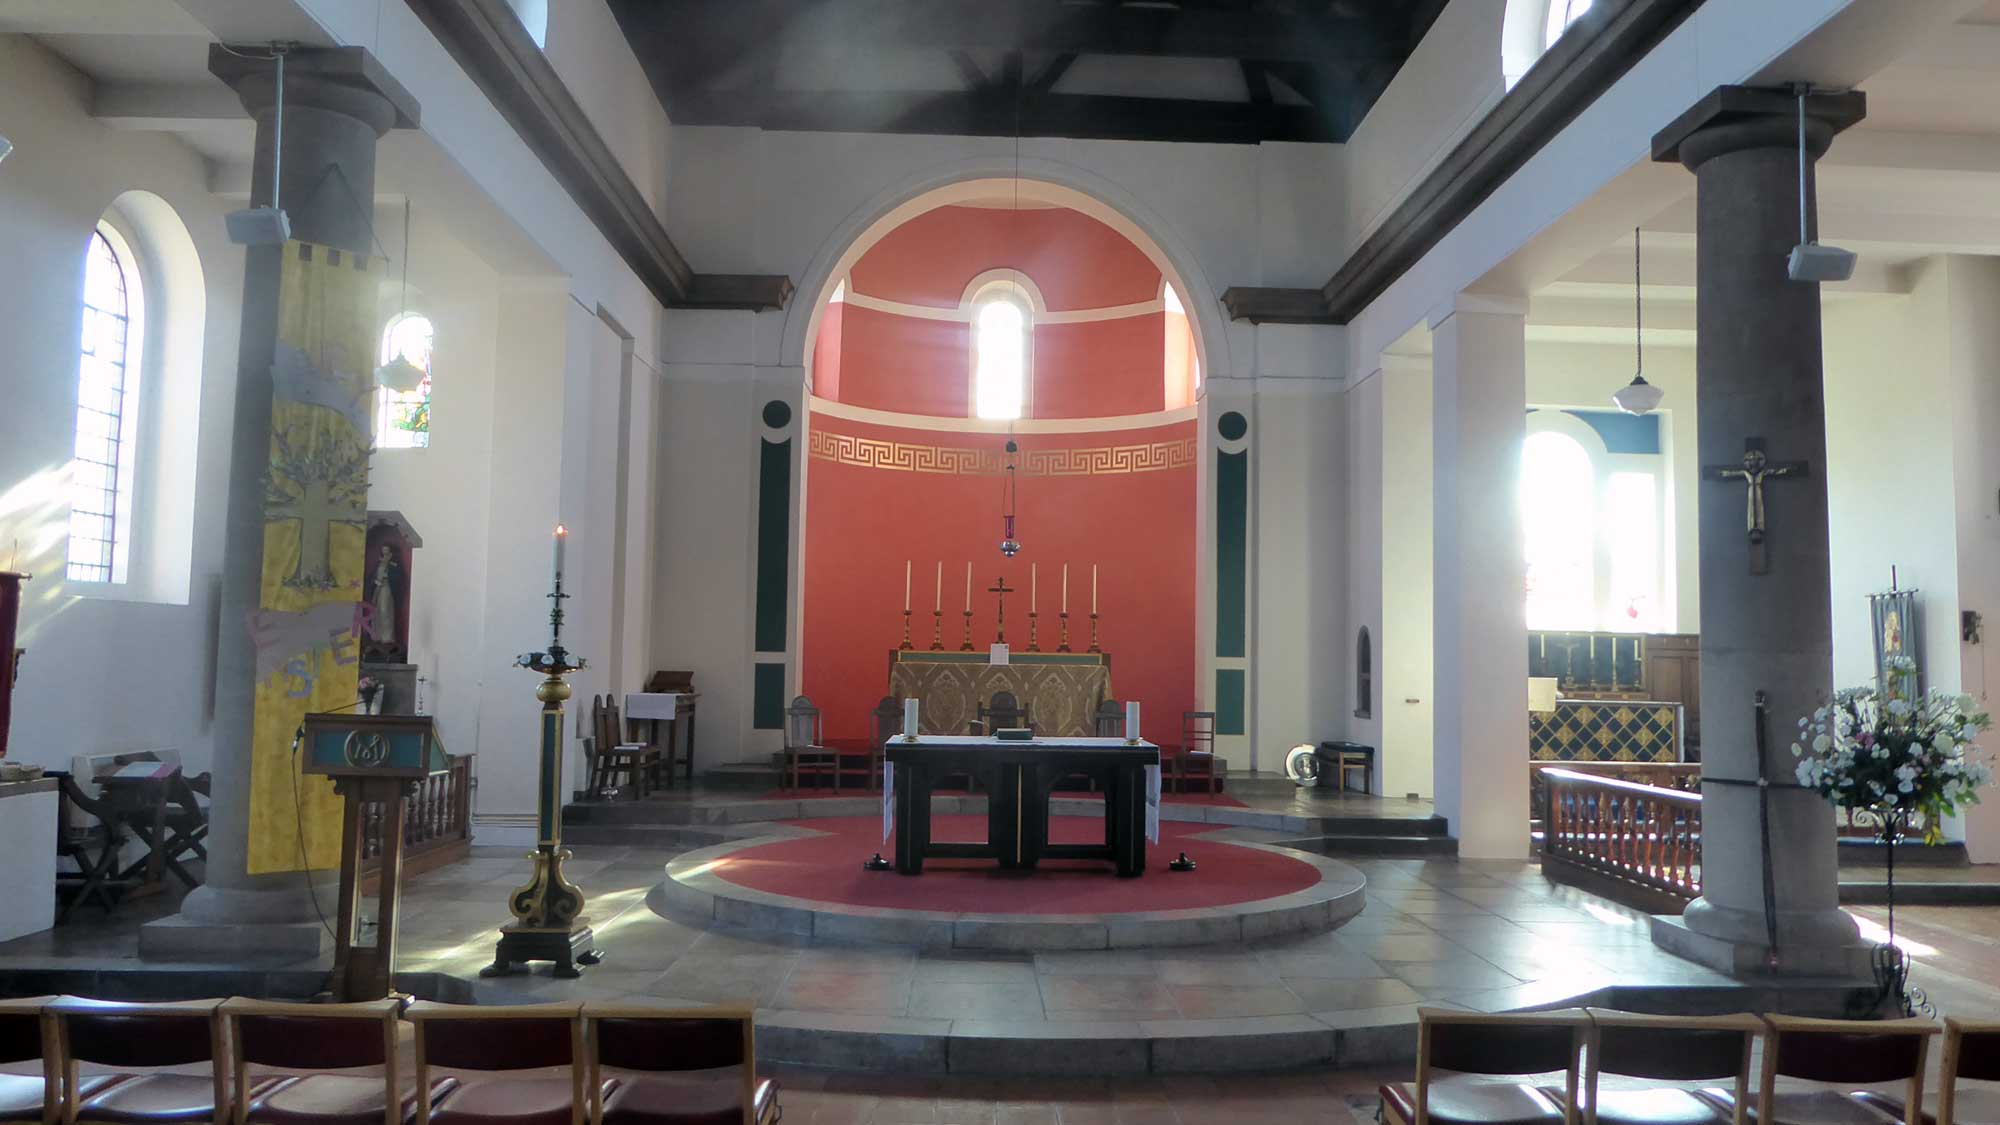 St Margarets - interior